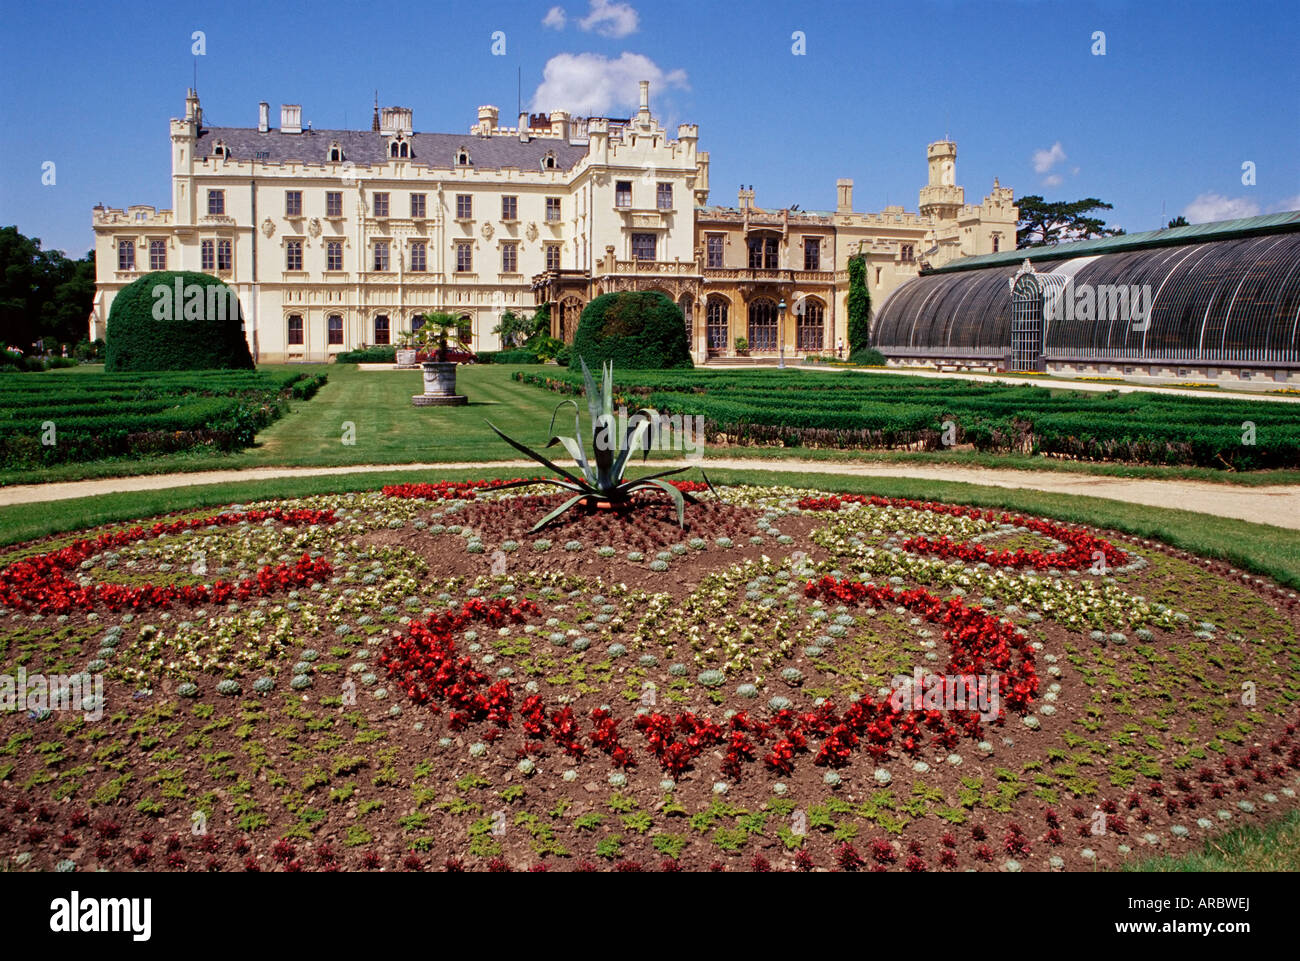 Gardens of chateau dating from 1856, Lednice, UNESCO World Heritage ...